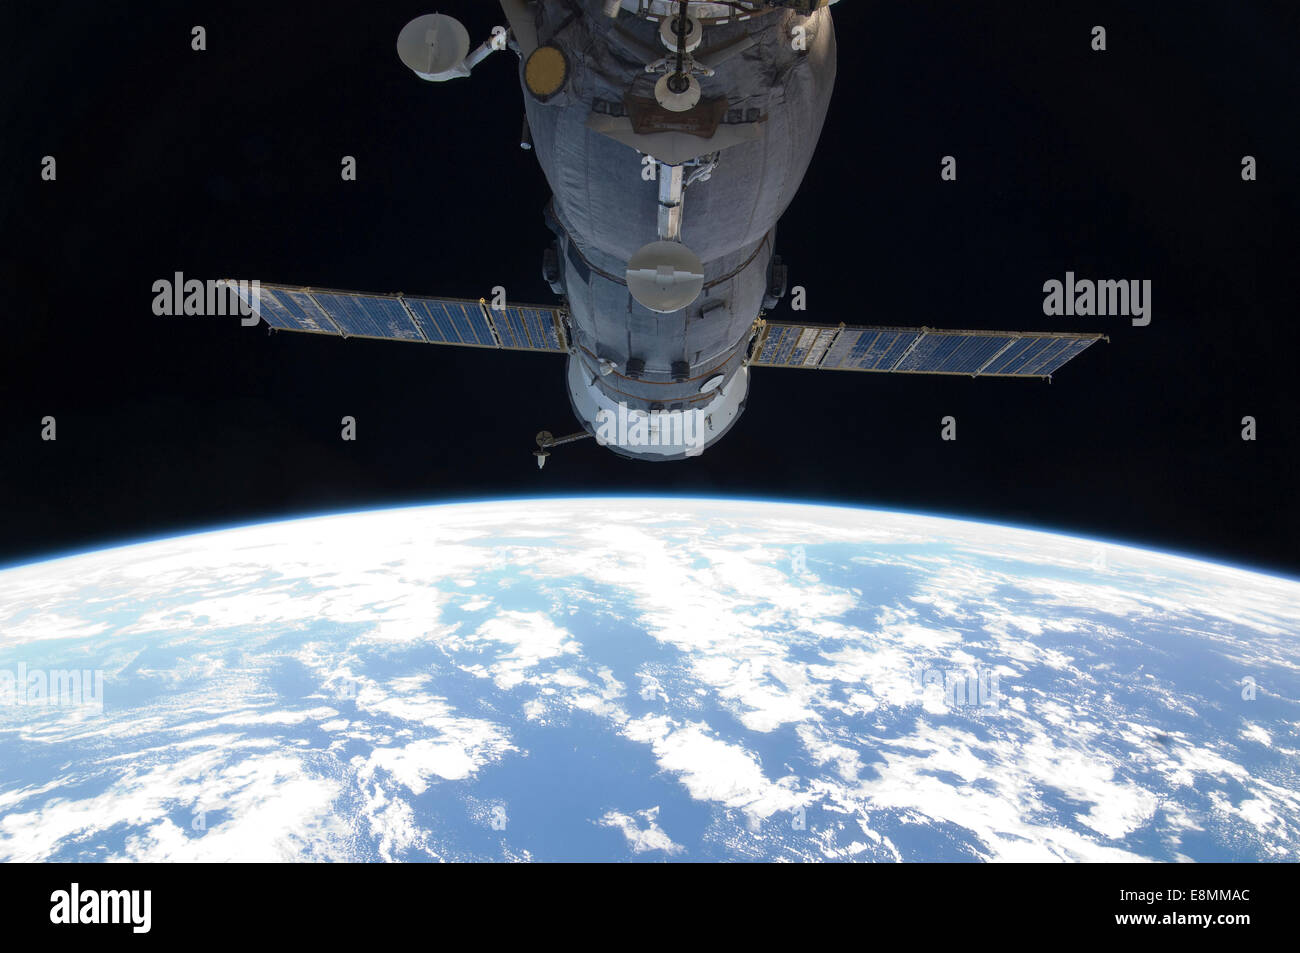 September 16, 2011 - A docked Russian Soyuz spacecraft backdropped by Earth's horizon and the blackness of space. - Stock Image